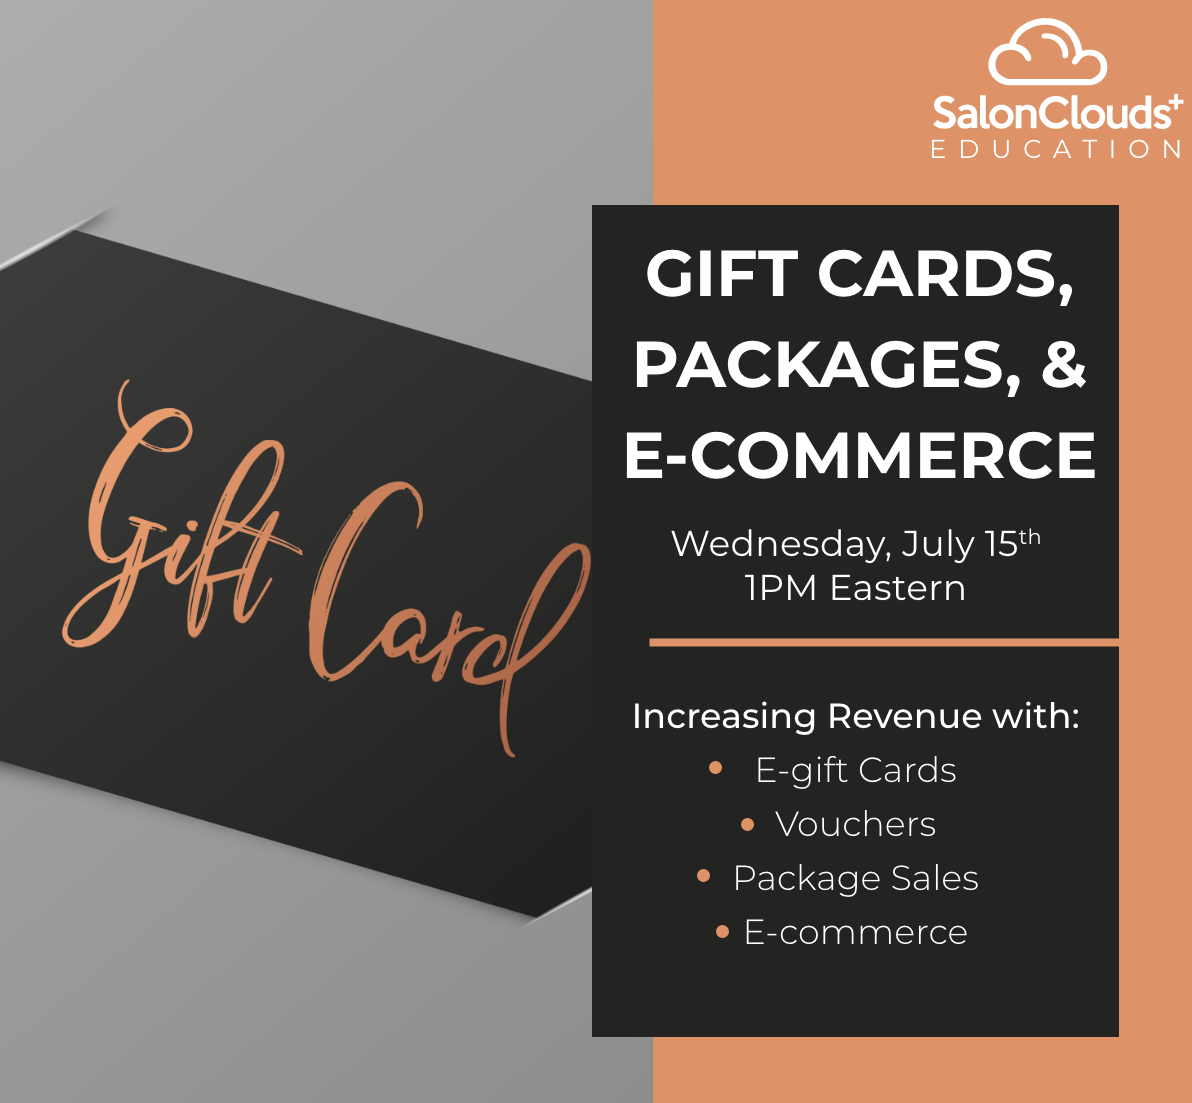 Gift Cards, Packages, & E-commerce Training Webinar Recording